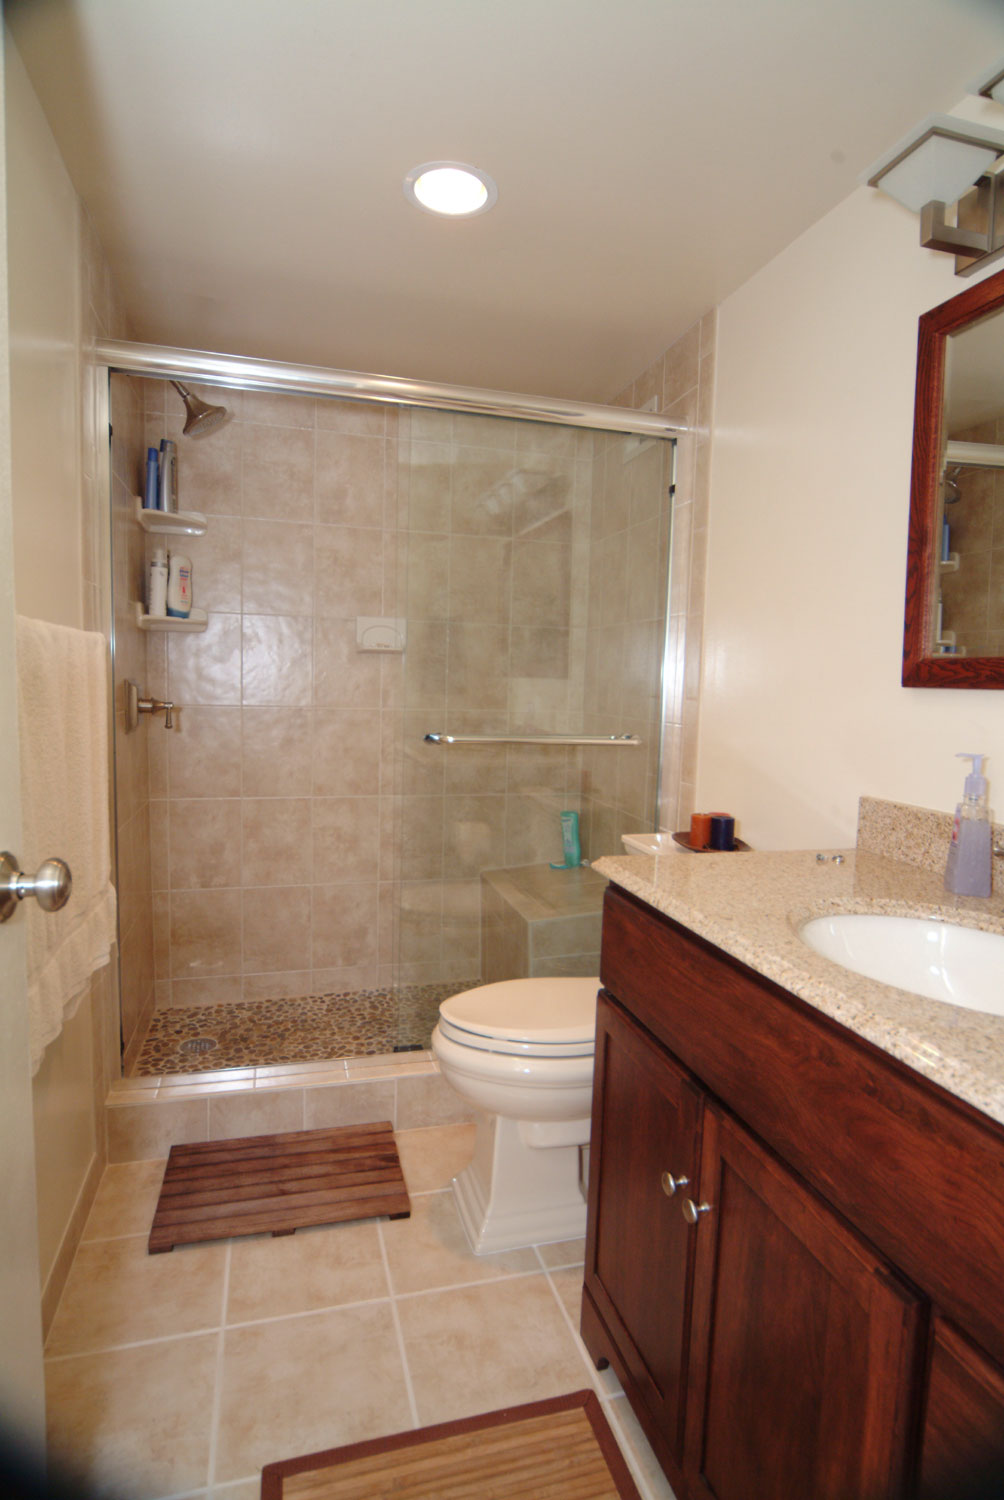 Bathroom remodeling montgomery co md handyman services Bathroom remodeling services